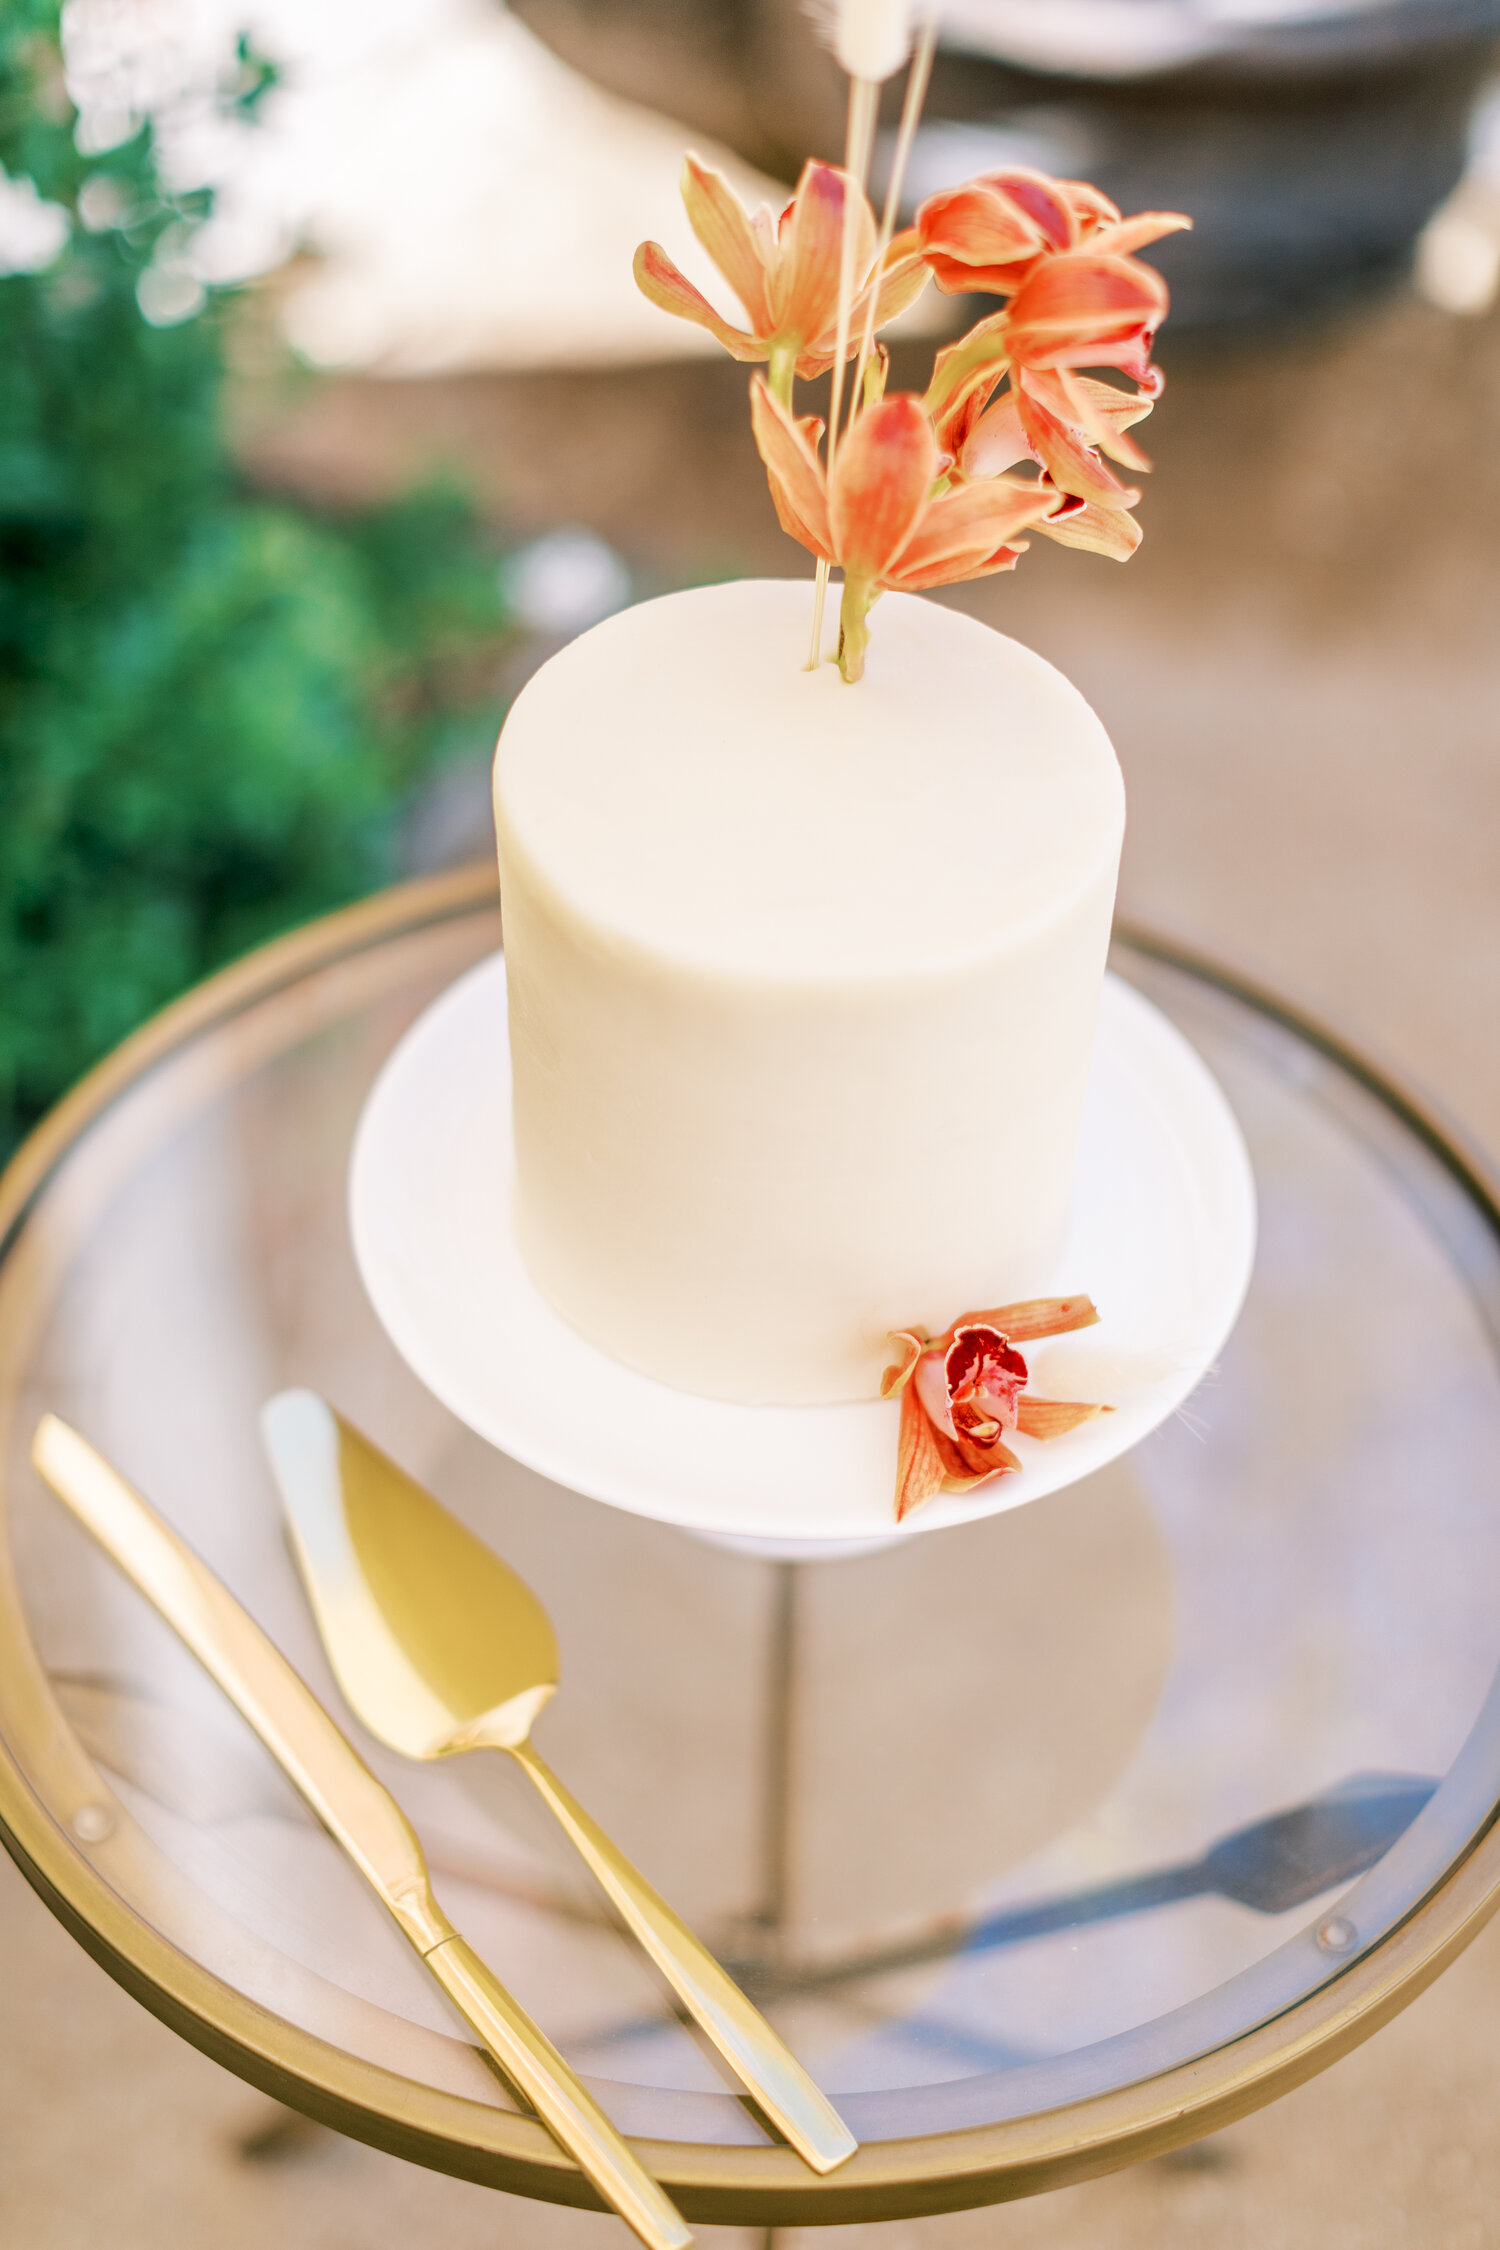 www.santabarbarawedding.com   Events by Fran   Ever After Petite Venue   Kendall Ann Photo   Tangled Lotus   My Lovely Events   D'lectable D'lights   Wedding Cake